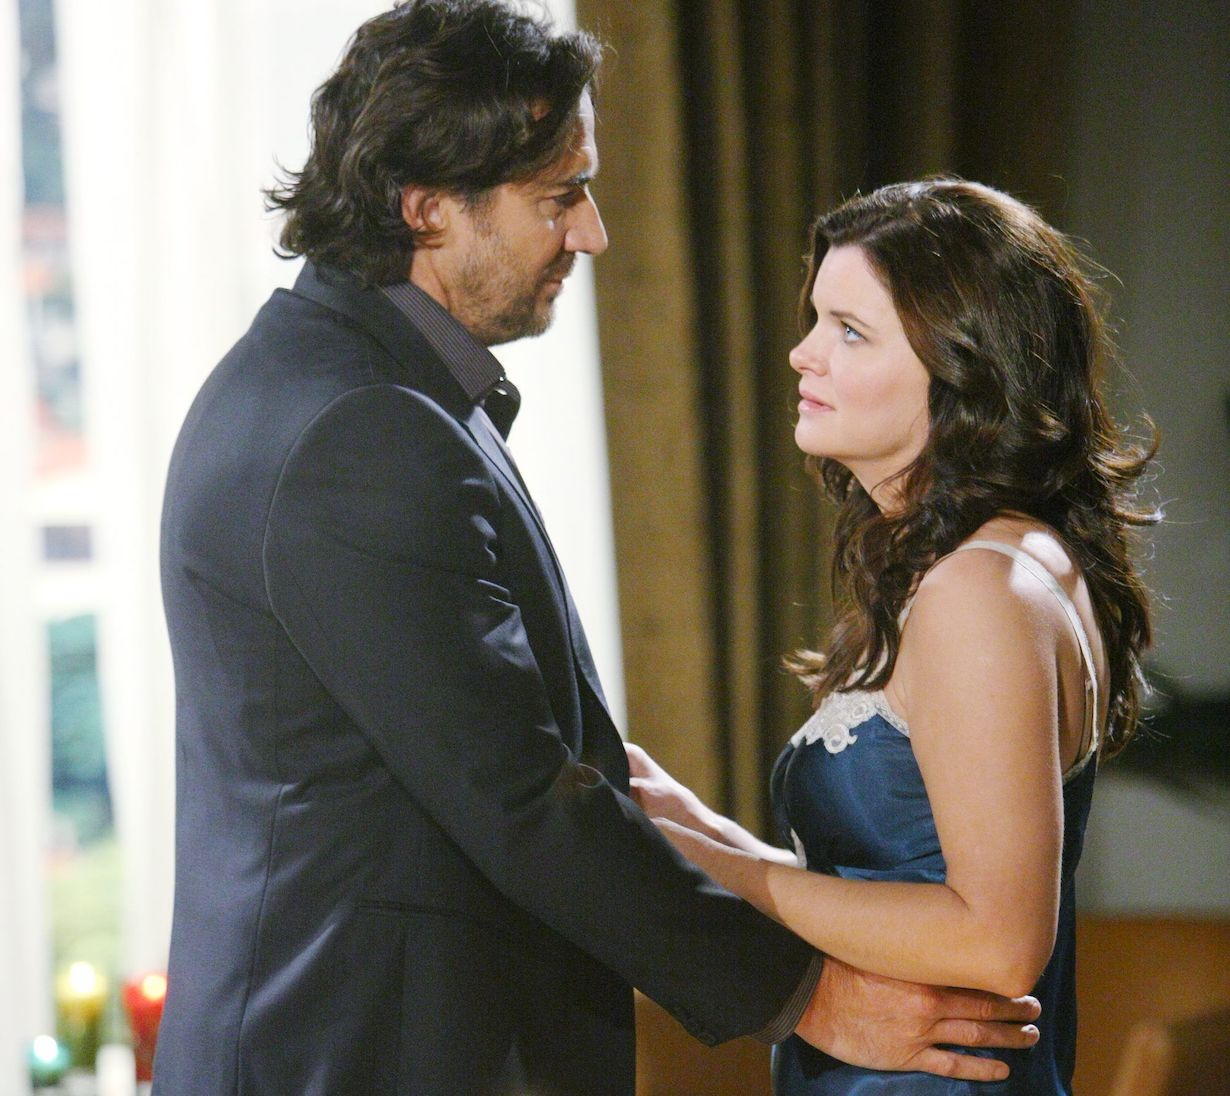 "Thorsten Kaye, Heather Tom""The Bold and the Beautiful"" SetCBS Television CityLos Angeles, Ca.01/31/14© sean smith/jpistudios.com310-657-9661Episode # 6796U.S.Airdate 04/04/14"